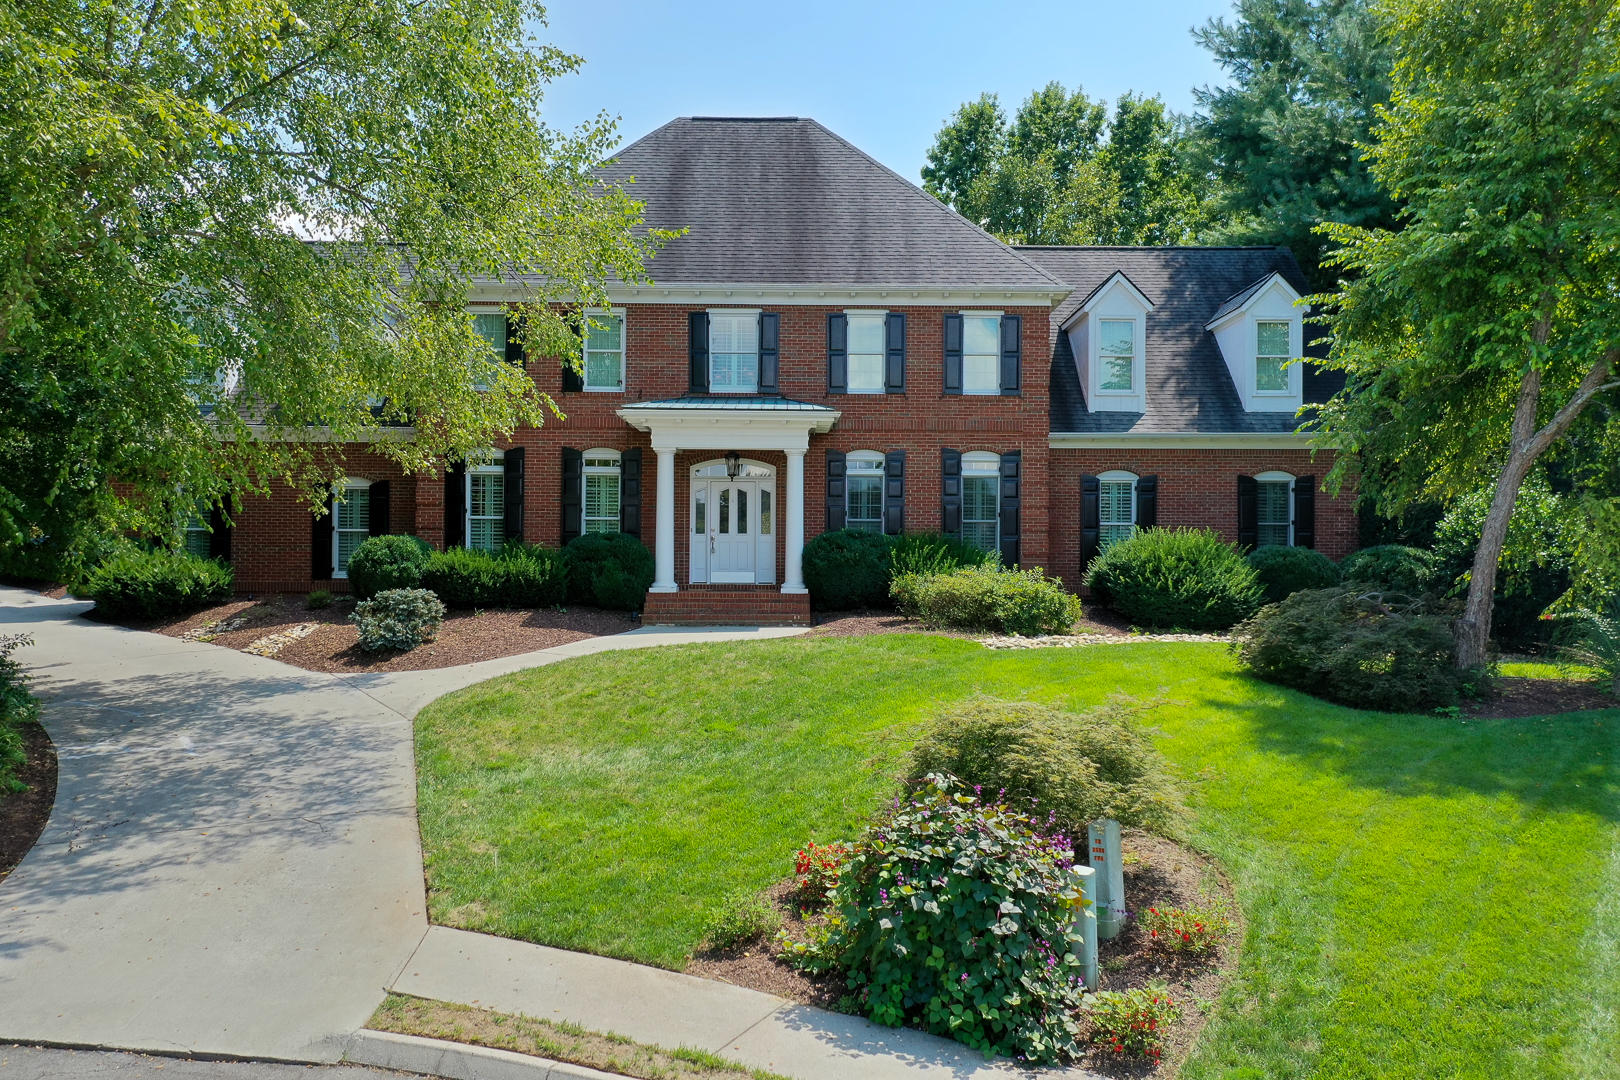 240 Sandringham, Knoxville, Tennessee, United States 37934, 4 Bedrooms Bedrooms, ,4 BathroomsBathrooms,Single Family,For Sale,Sandringham,1127548